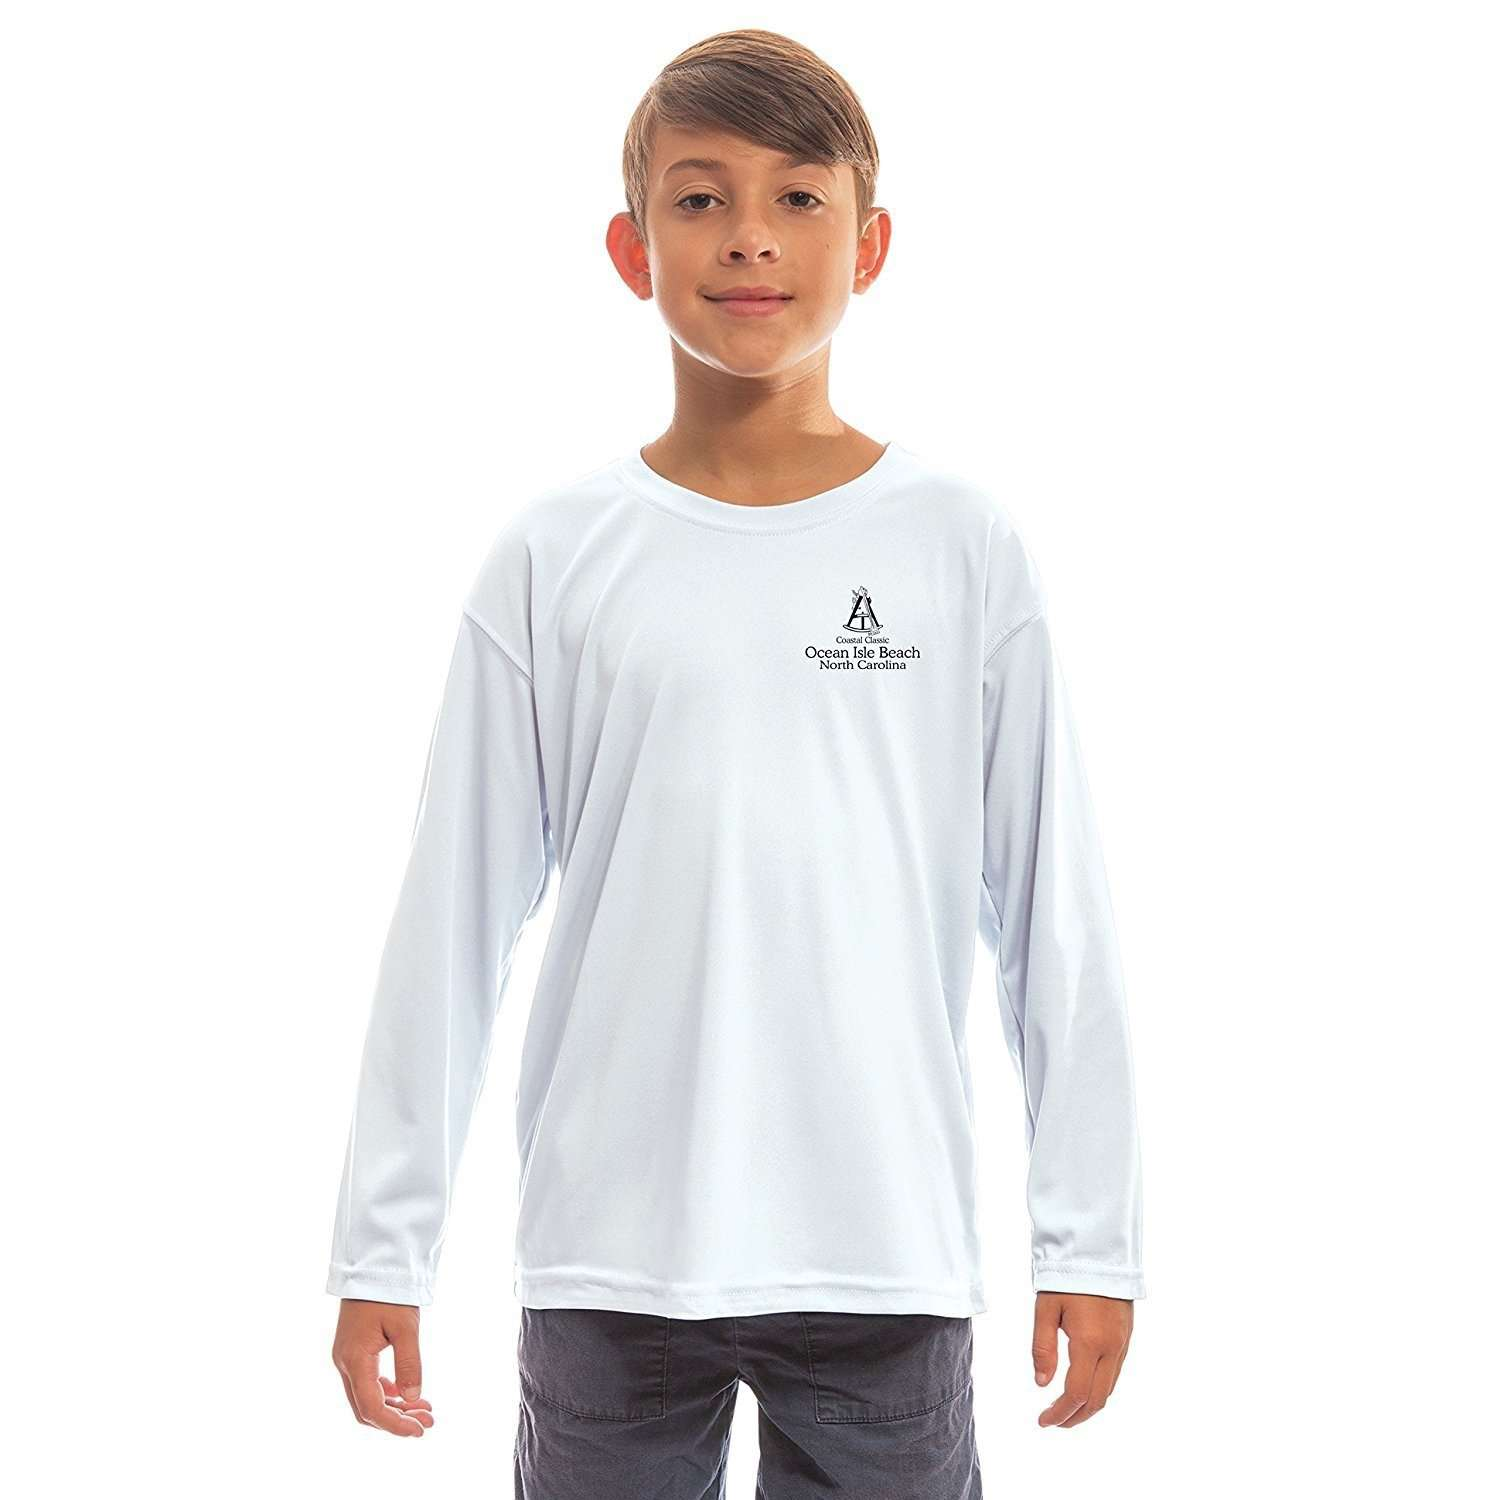 Altered Latitudes Coastal Classics Ocen Isle Beach Youth UPF 5+ UV/Sun Protection Long Sleeve T-Shirt - Altered Latitudes